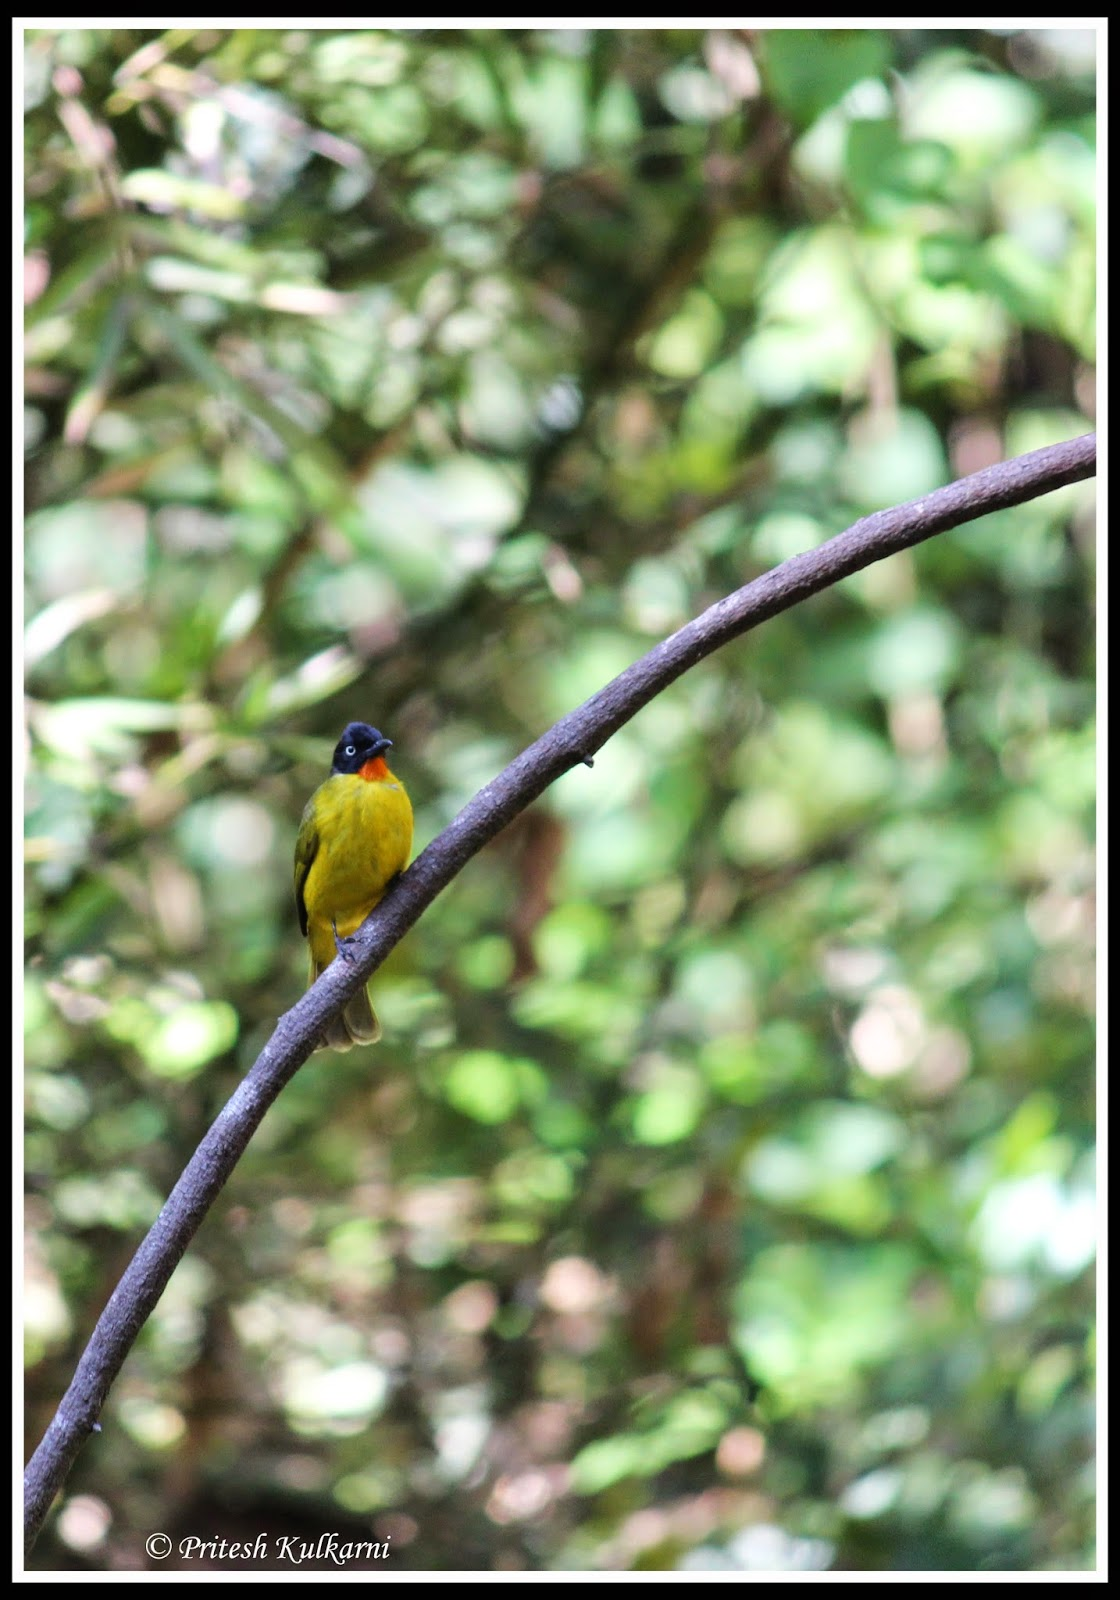 Flame throated Bulbul at Old Magazine House